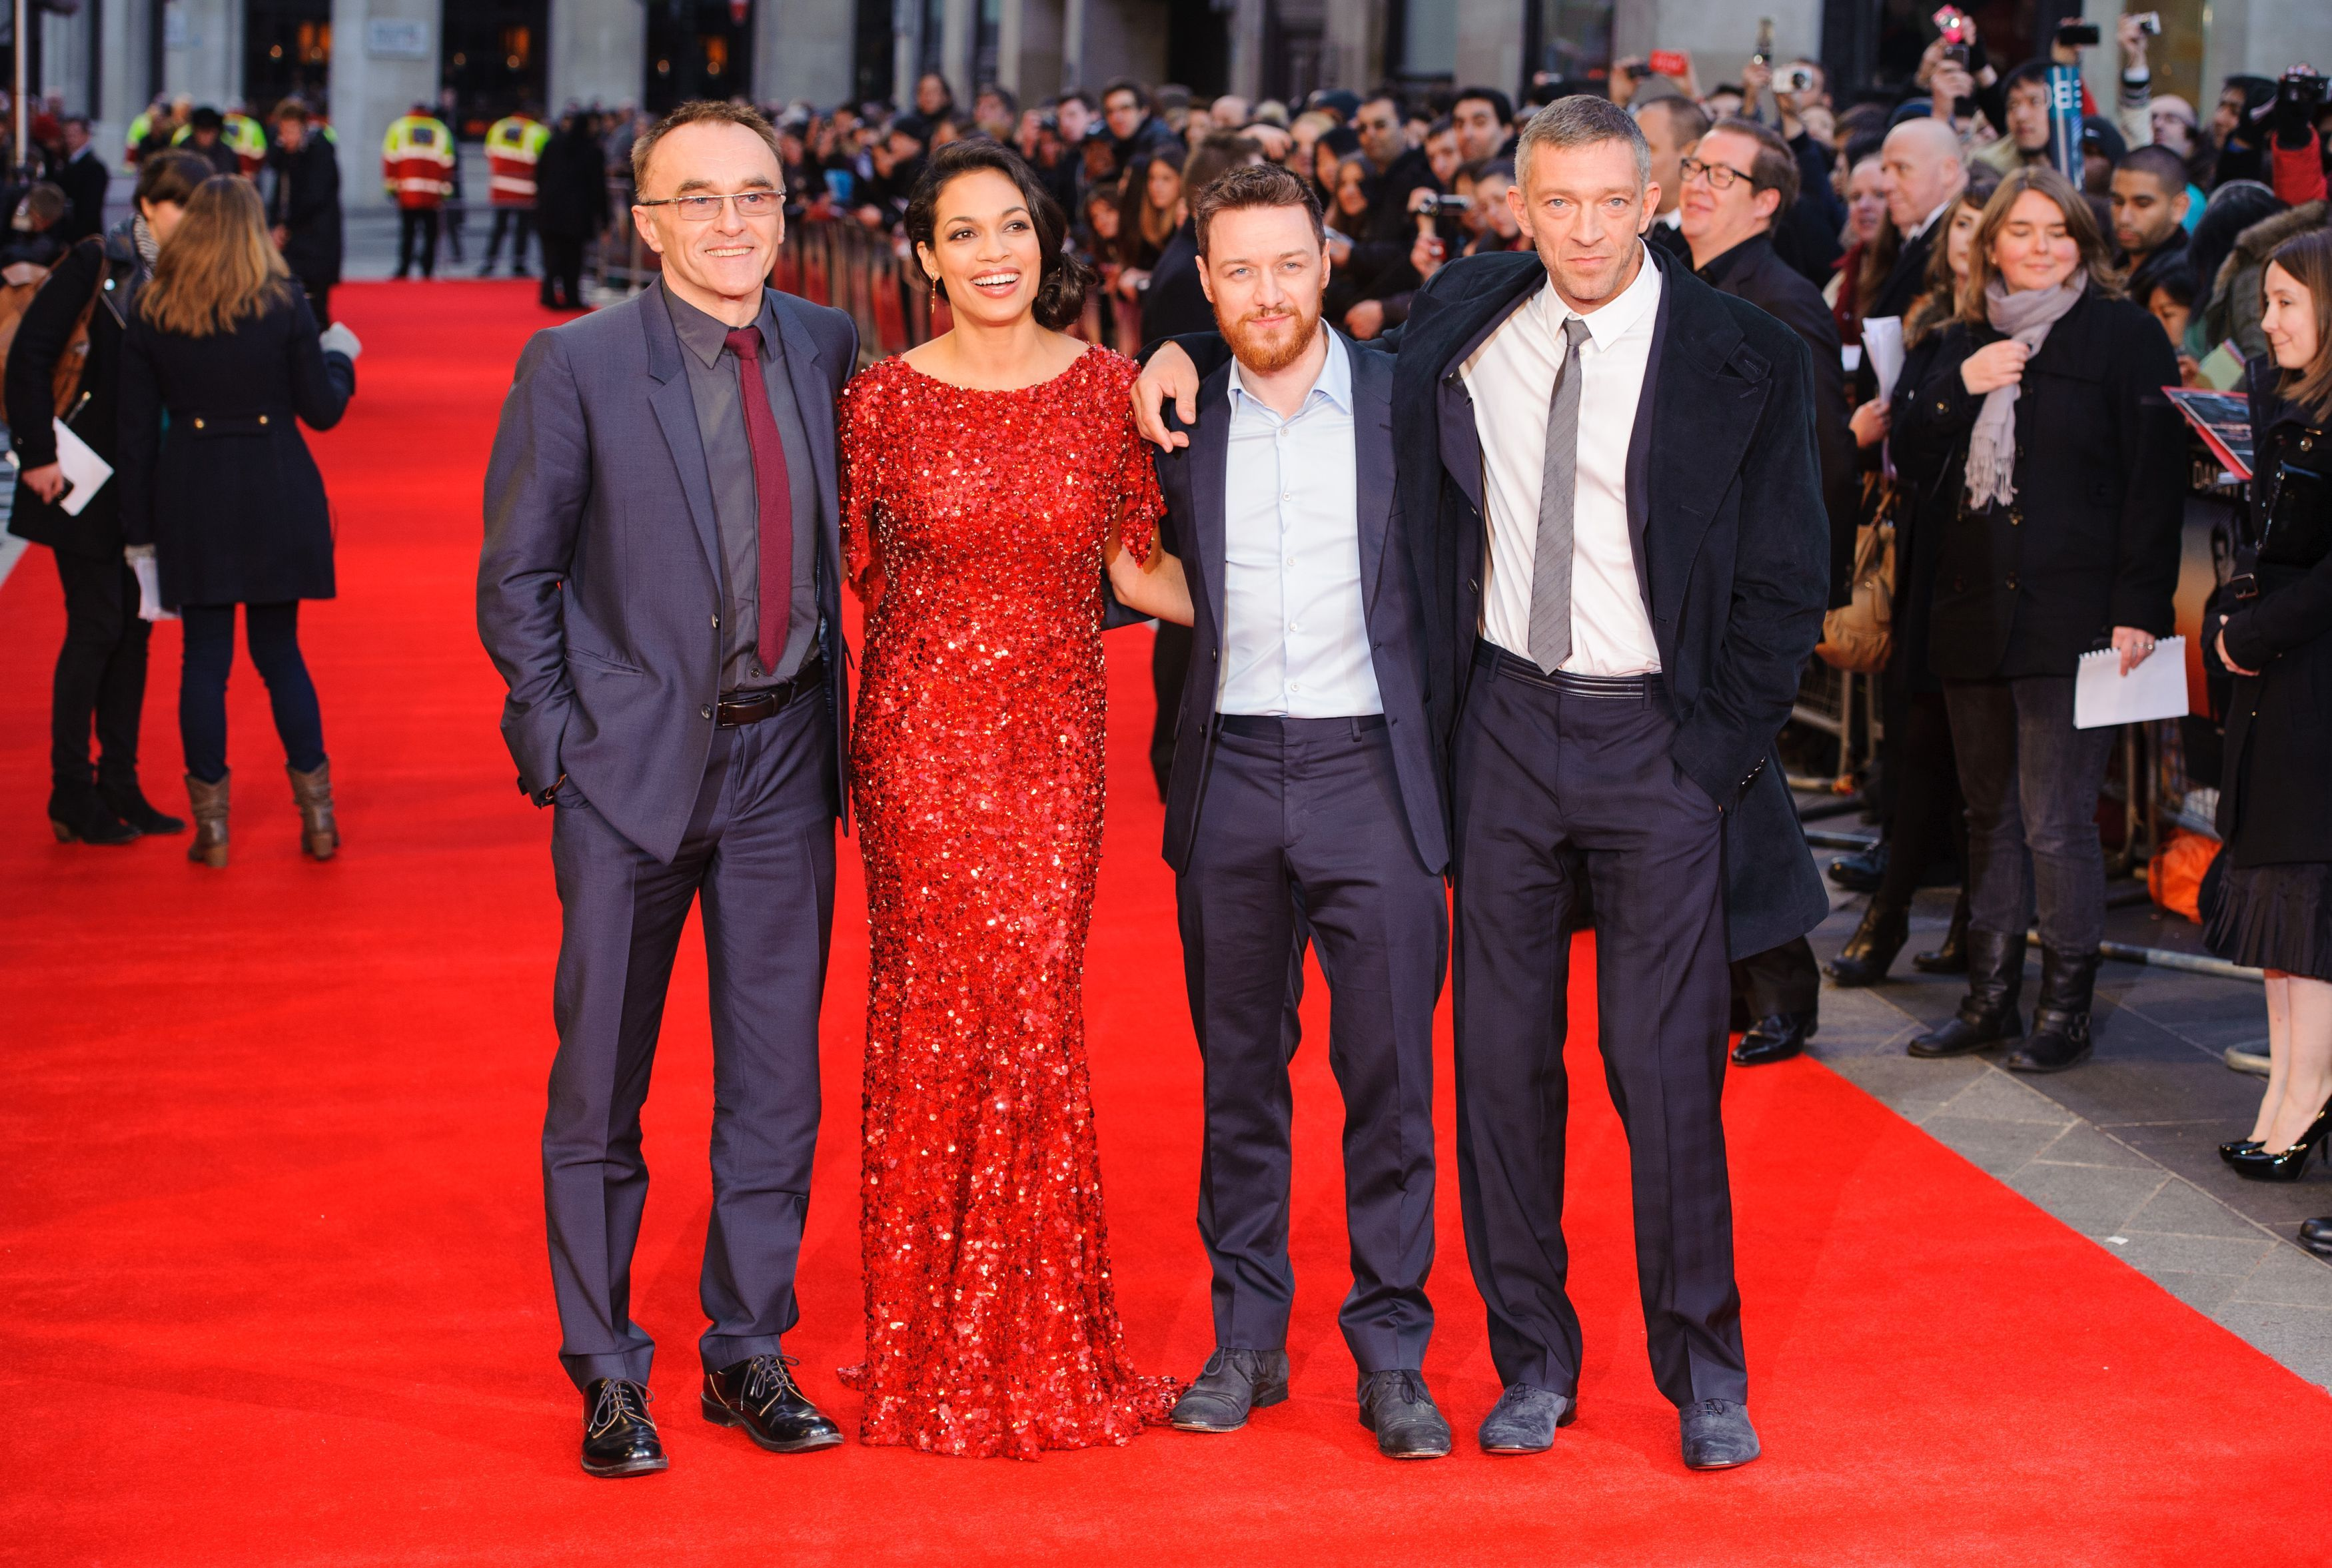 Danny Boyle, Rosario Dawson, James McAvoy and Vincent Cassel attend the premiere of Trance (Picture: PA)